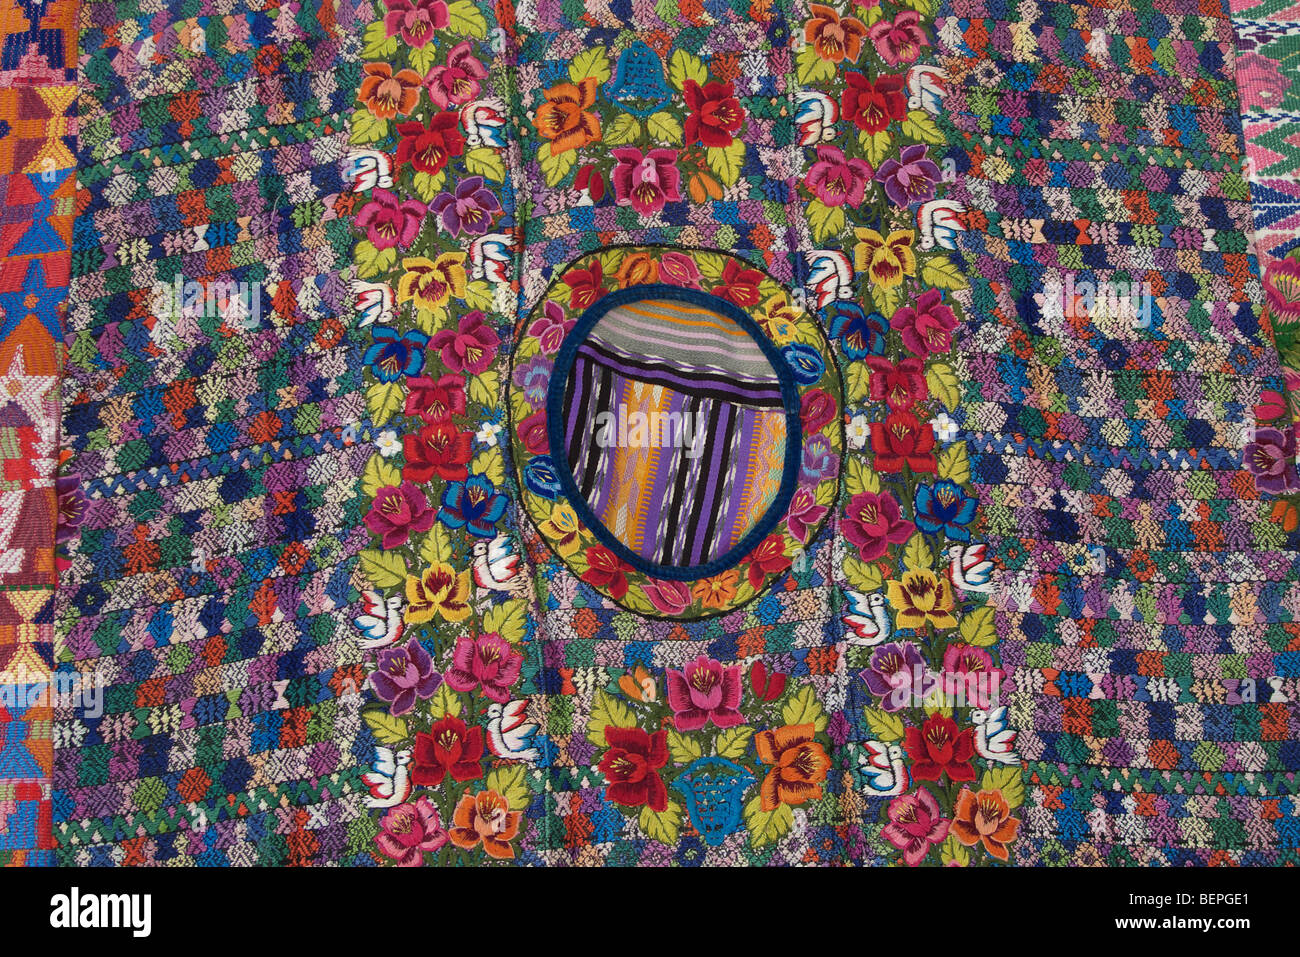 GUATEMALA  Market at Santiago de Atitlan, Detail of a huipil, or woman's blouse with intricate embroidery on - Stock Image